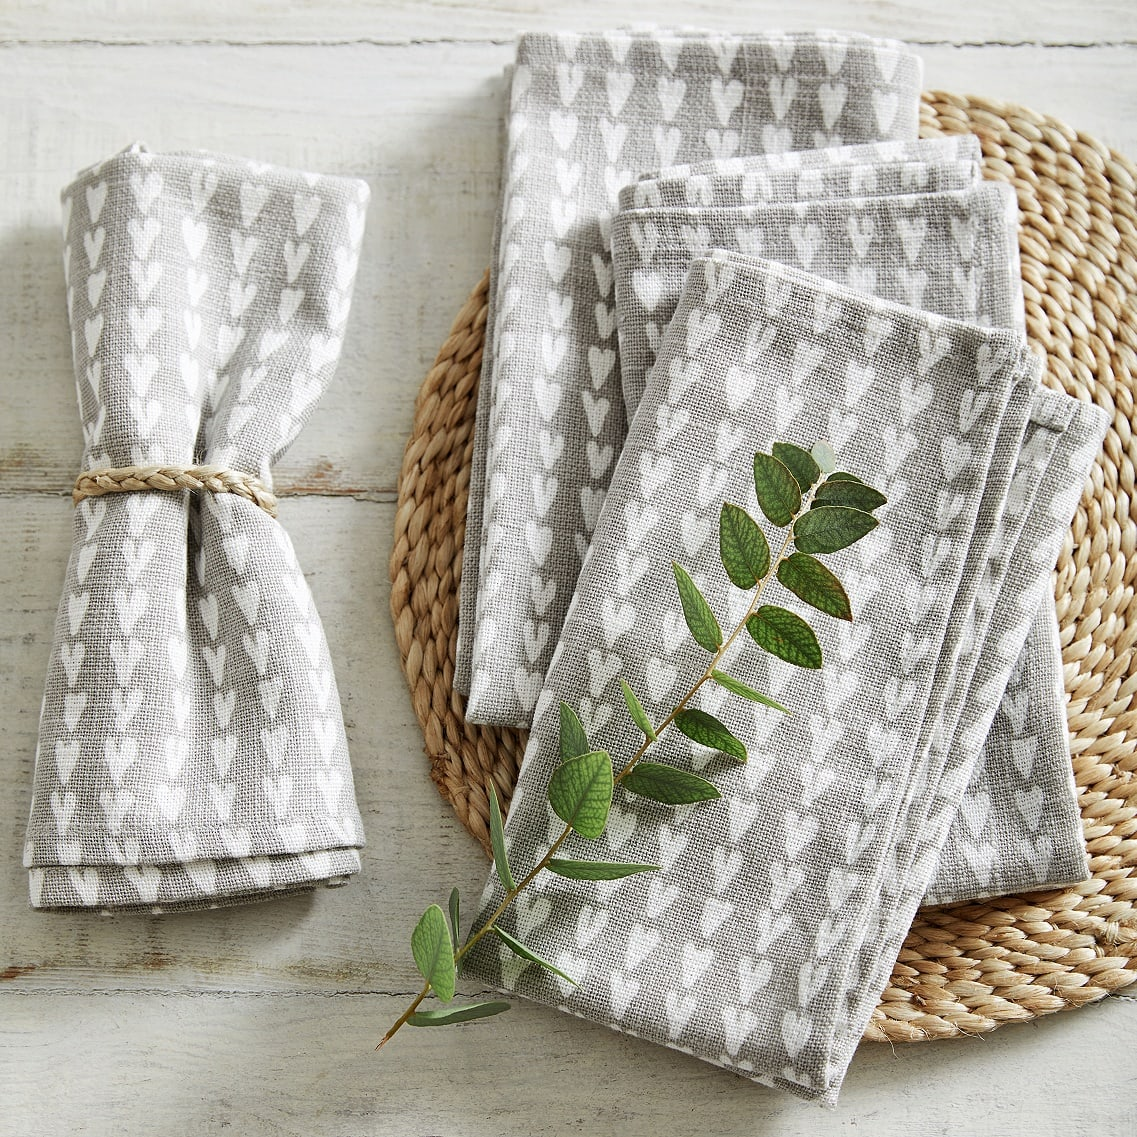 Heart Print napkins -  The White Company